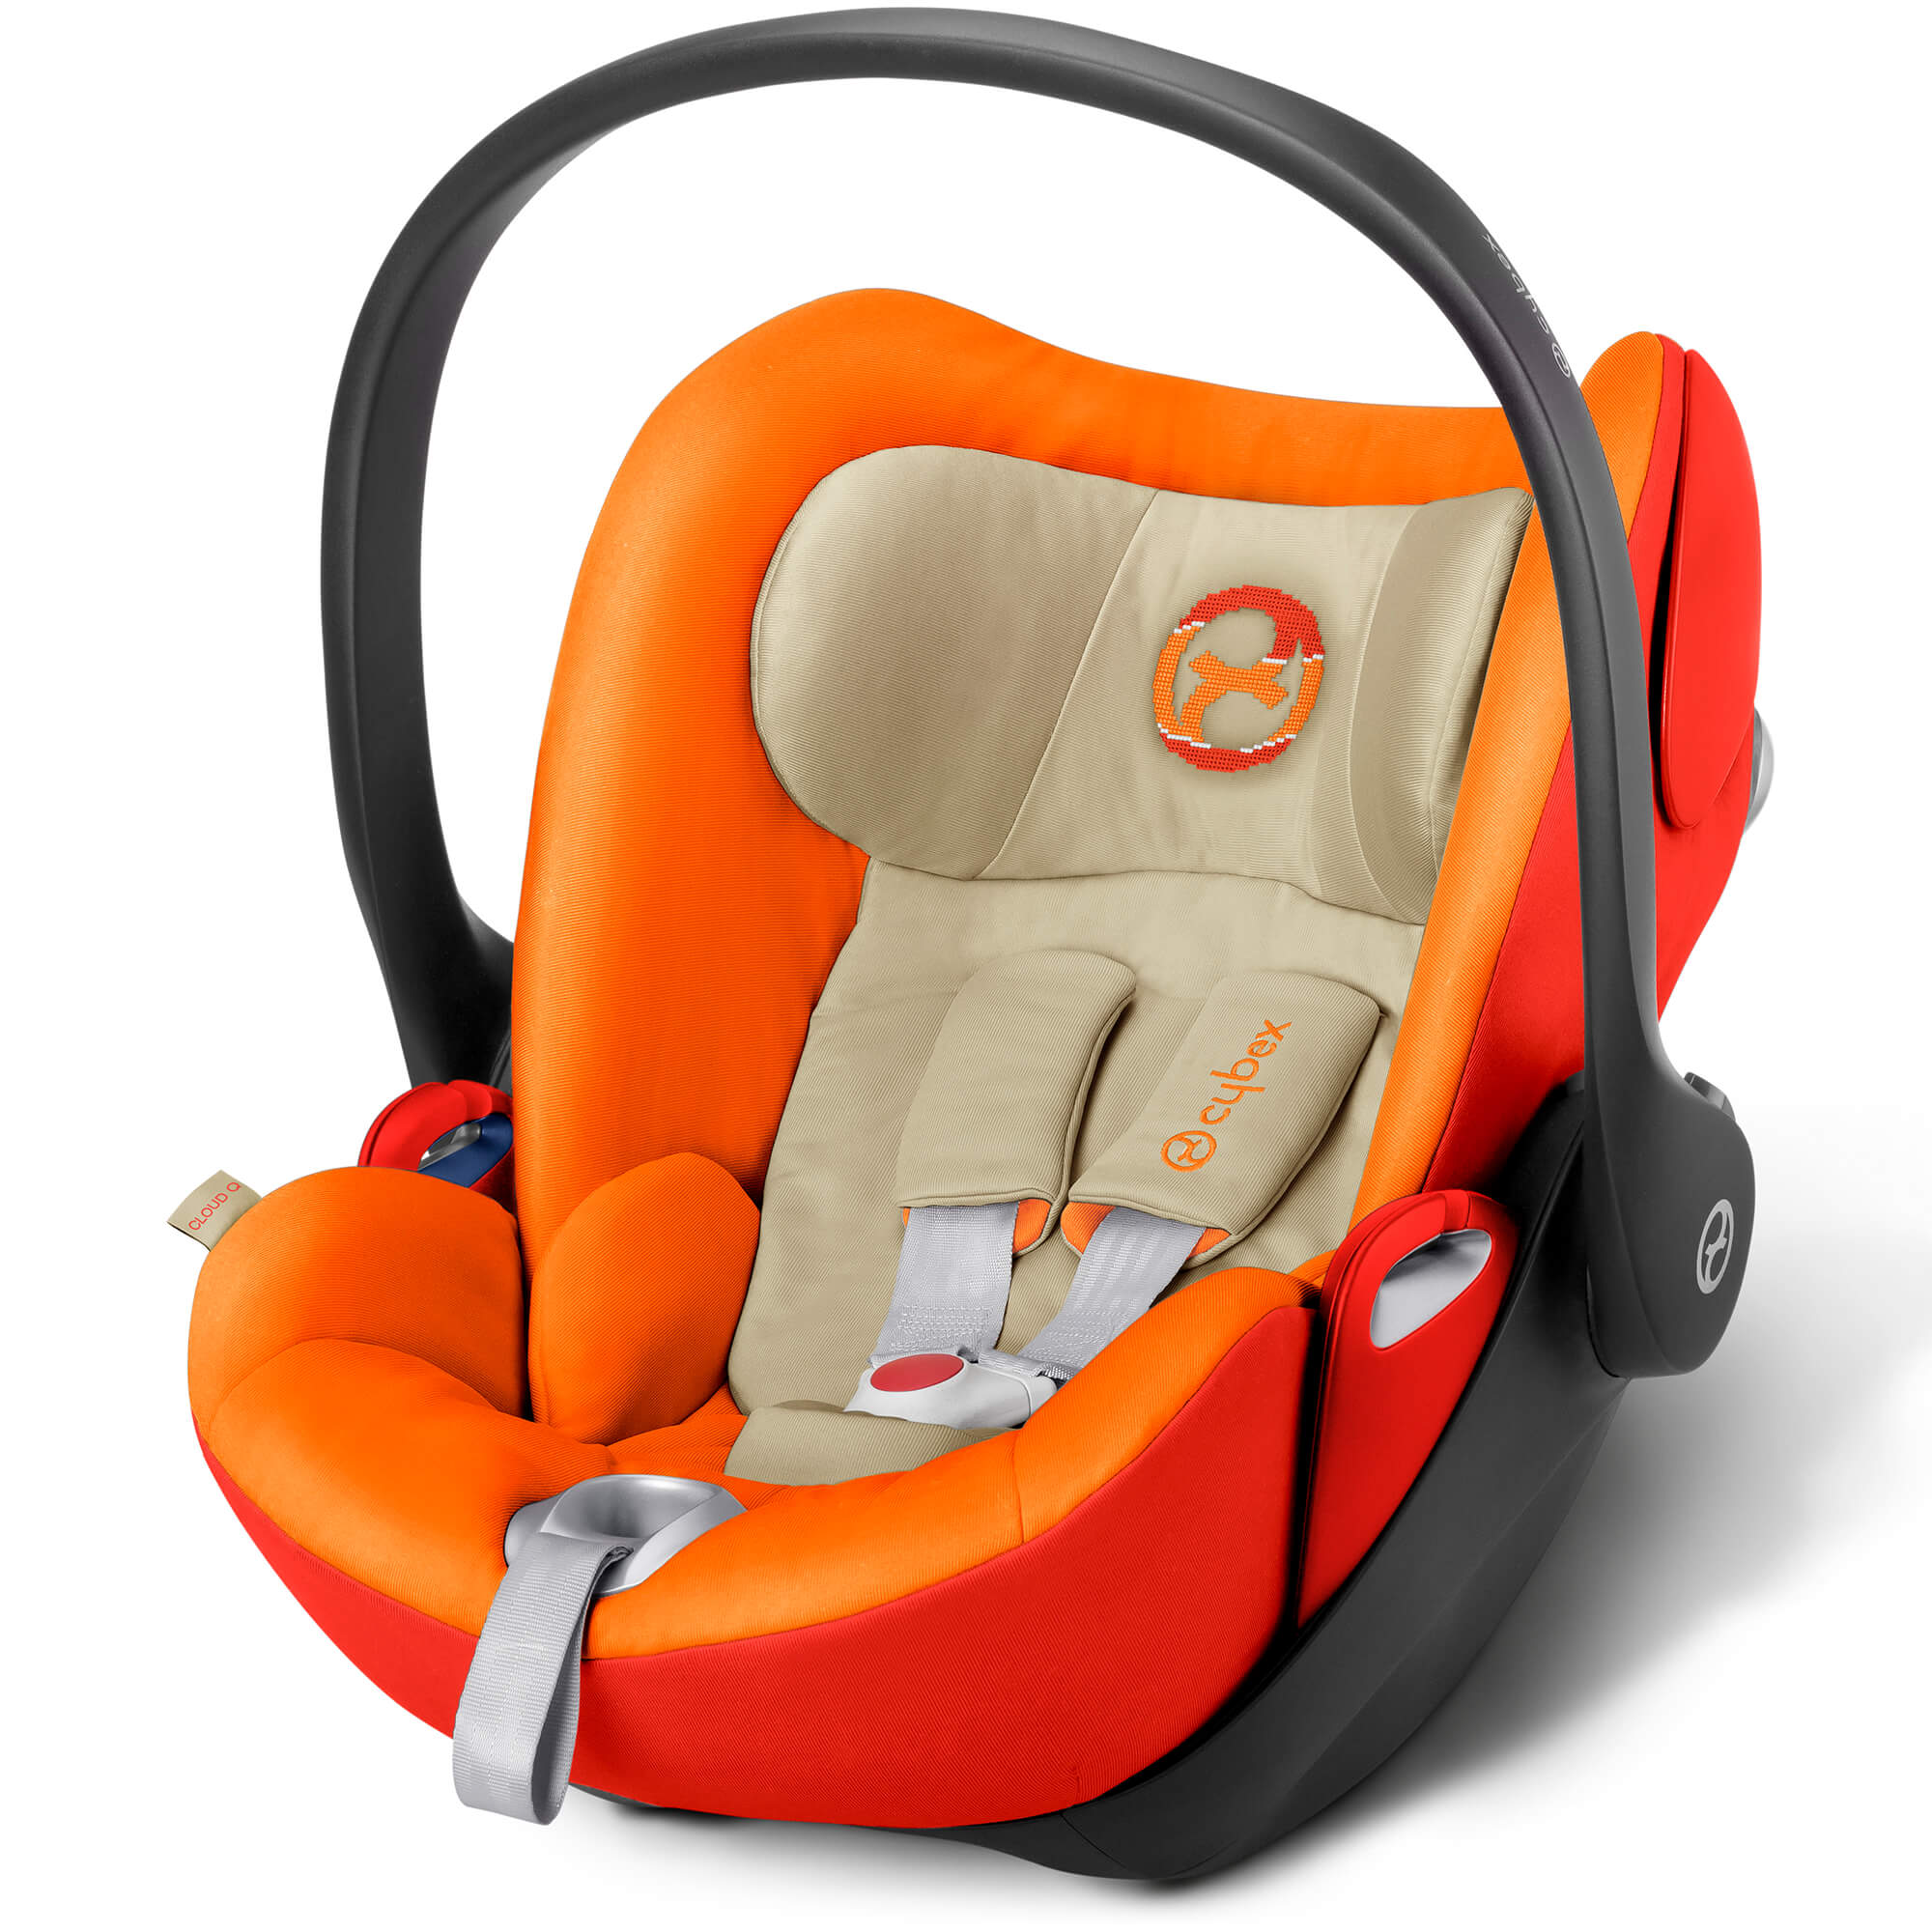 Buggy Test Warentest Cybex Cloud Q Autumn Gold Infant Carrier